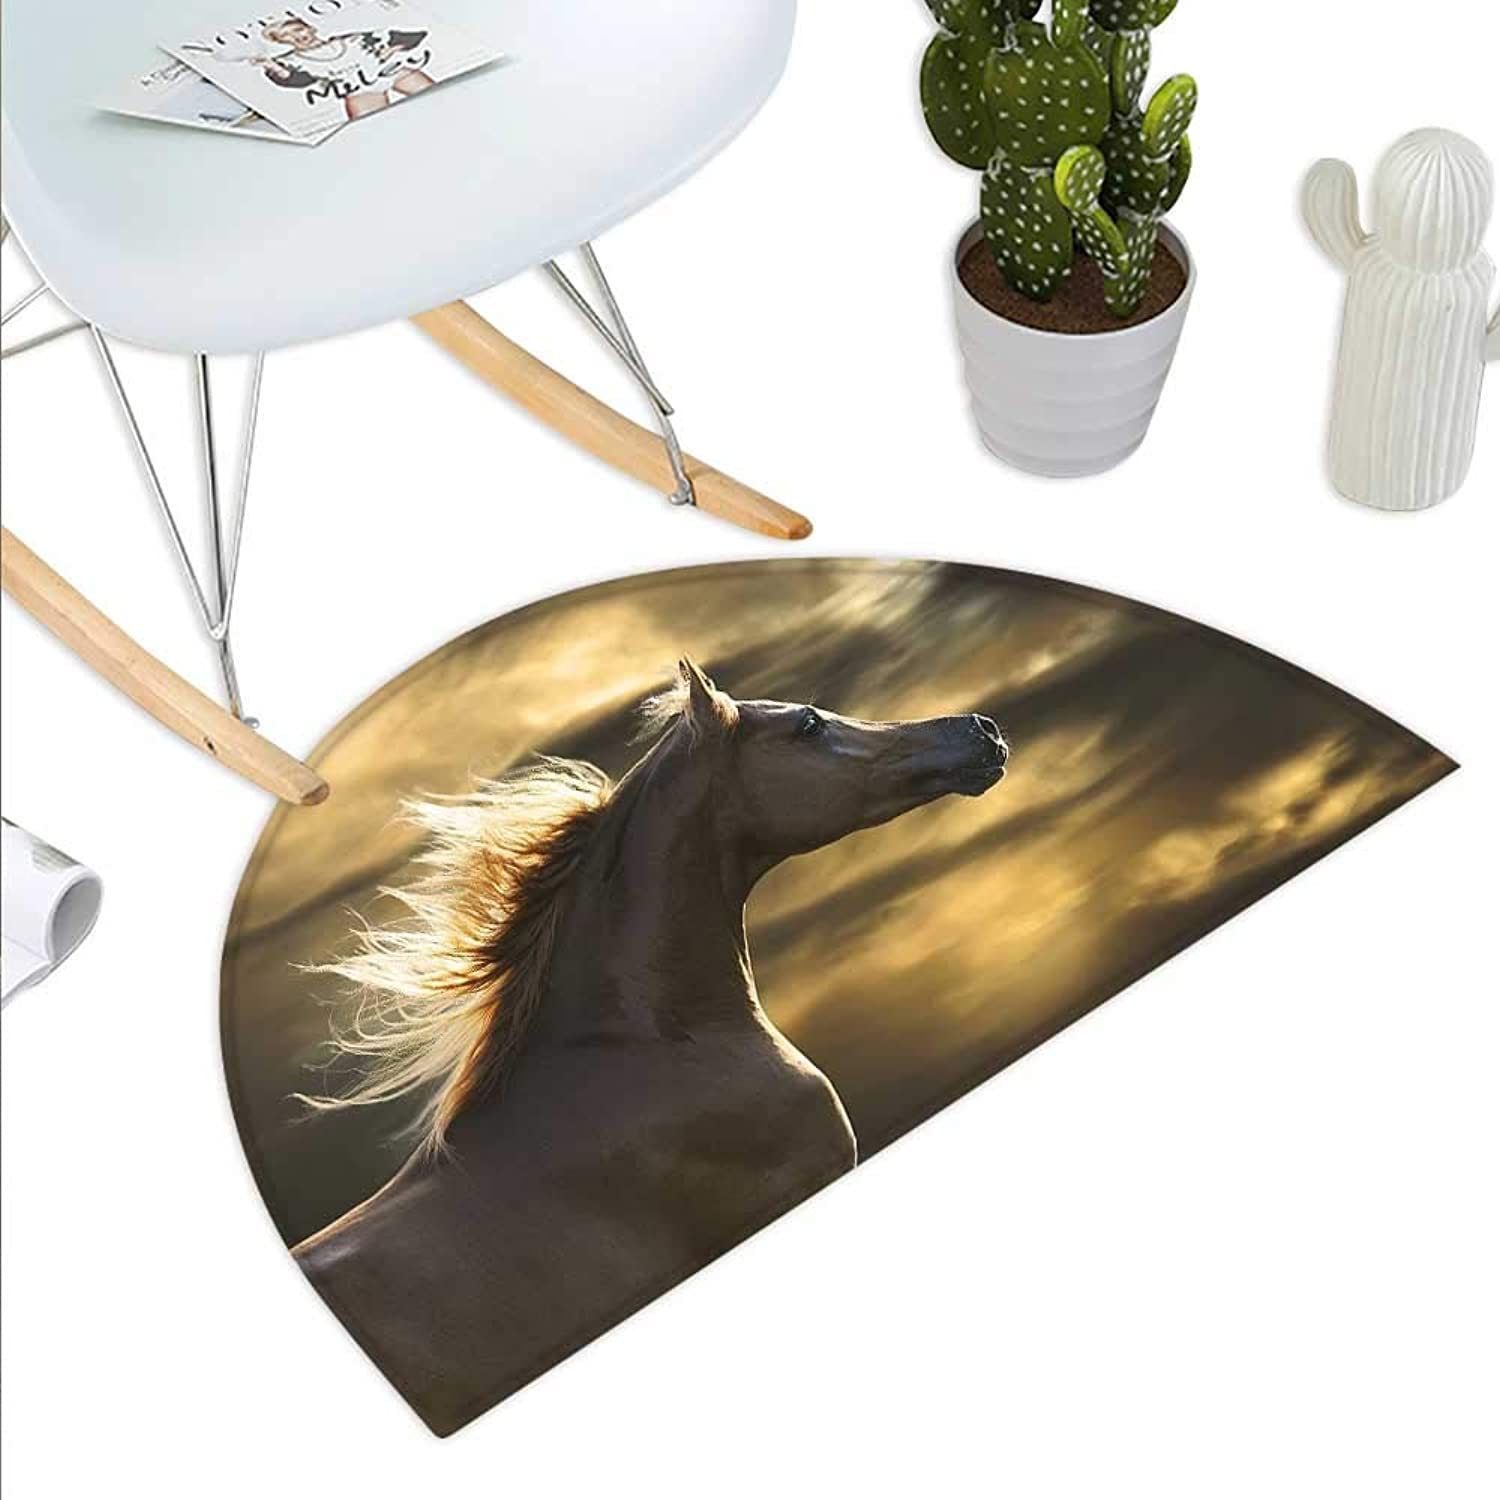 Horse Decor Semicircle Doormat Chestnut Horse Profile on Dramatic Cloudy Sunset Sky Strong Wild Young Mammal Halfmoon doormats H 43.3  xD 64.9  Brown Yellow